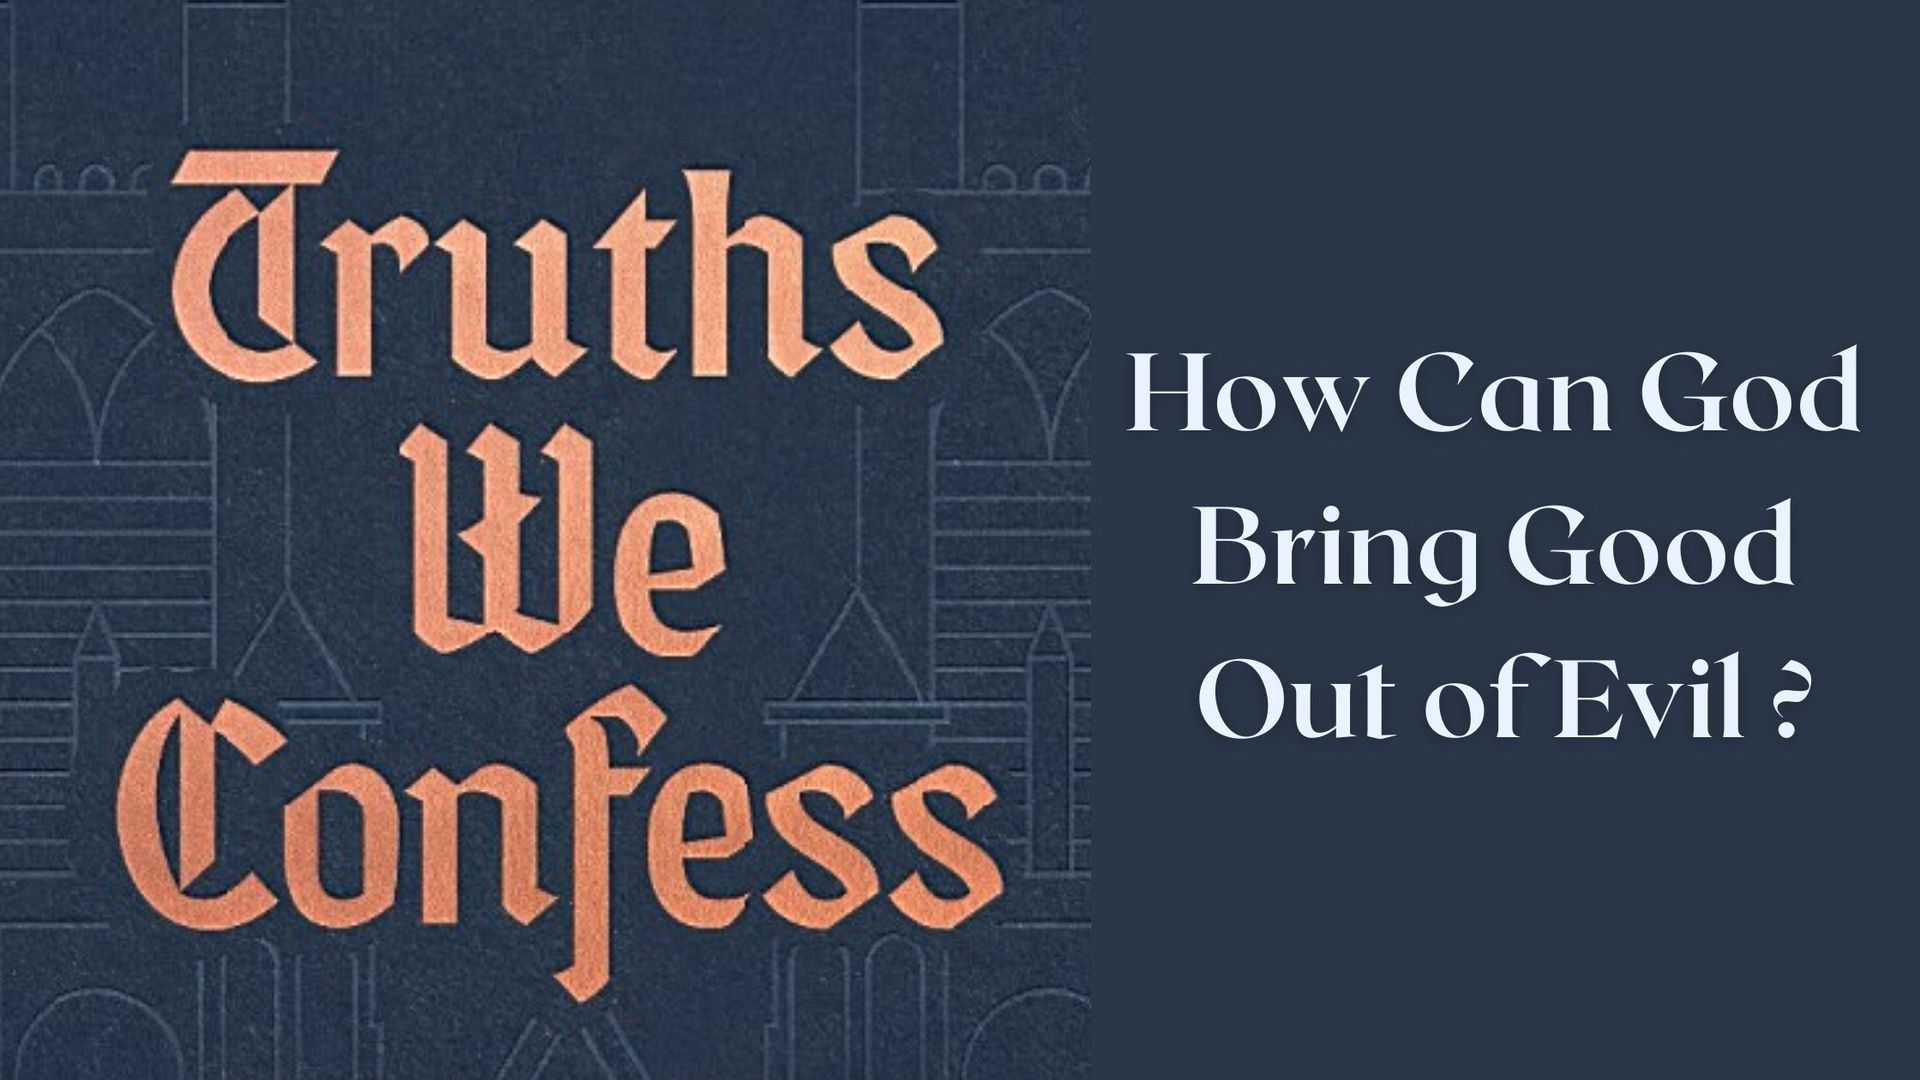 An extract from the book 'Truths We Confess' by R.C. Sproul